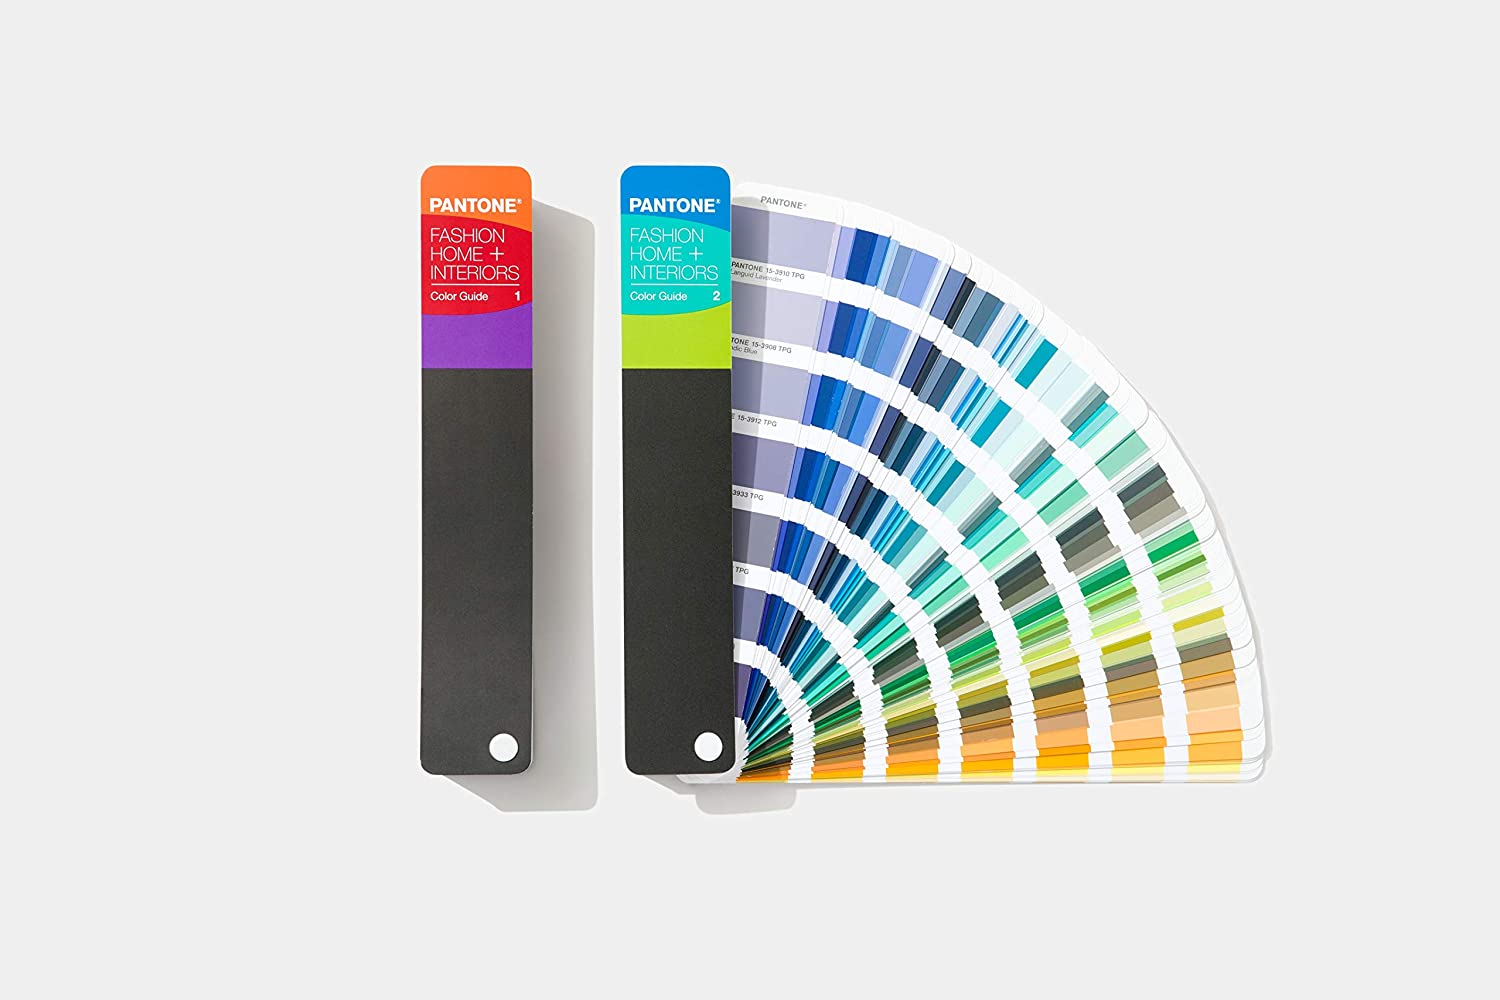 Pantone Color Guide for Fashion, Home & Interiors - 2020 Edition